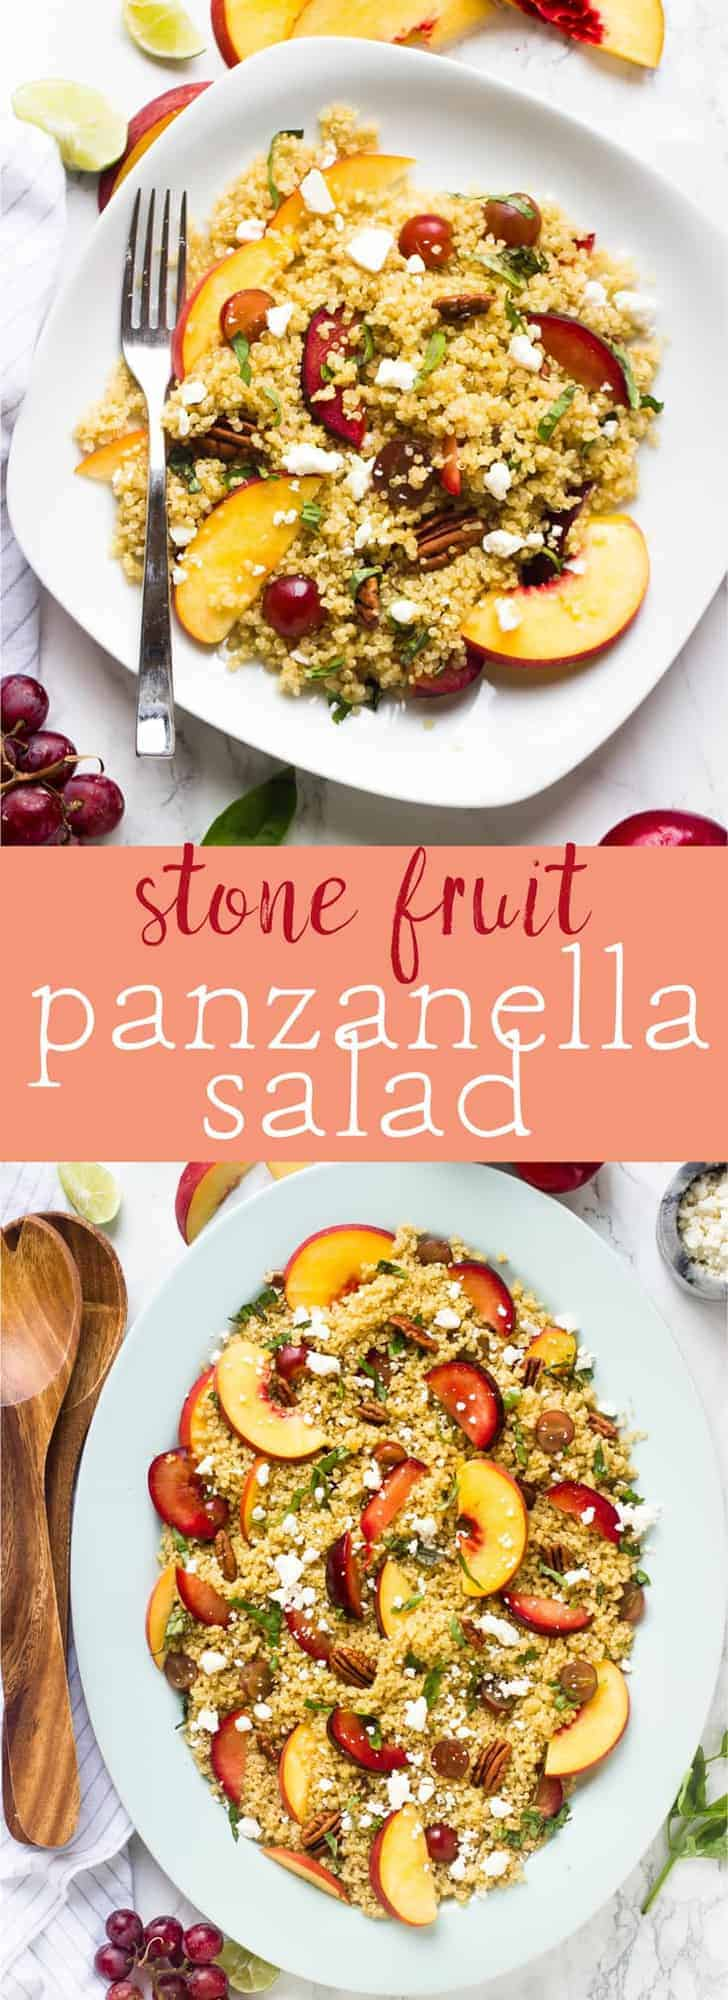 This Quinoa Stone Fruit Salad is a beautiful summer salad loaded with peaches and plums and drizzled with a maple lime dressing that comes together in just 20 minutes! via https://jessicainthekitchen.com